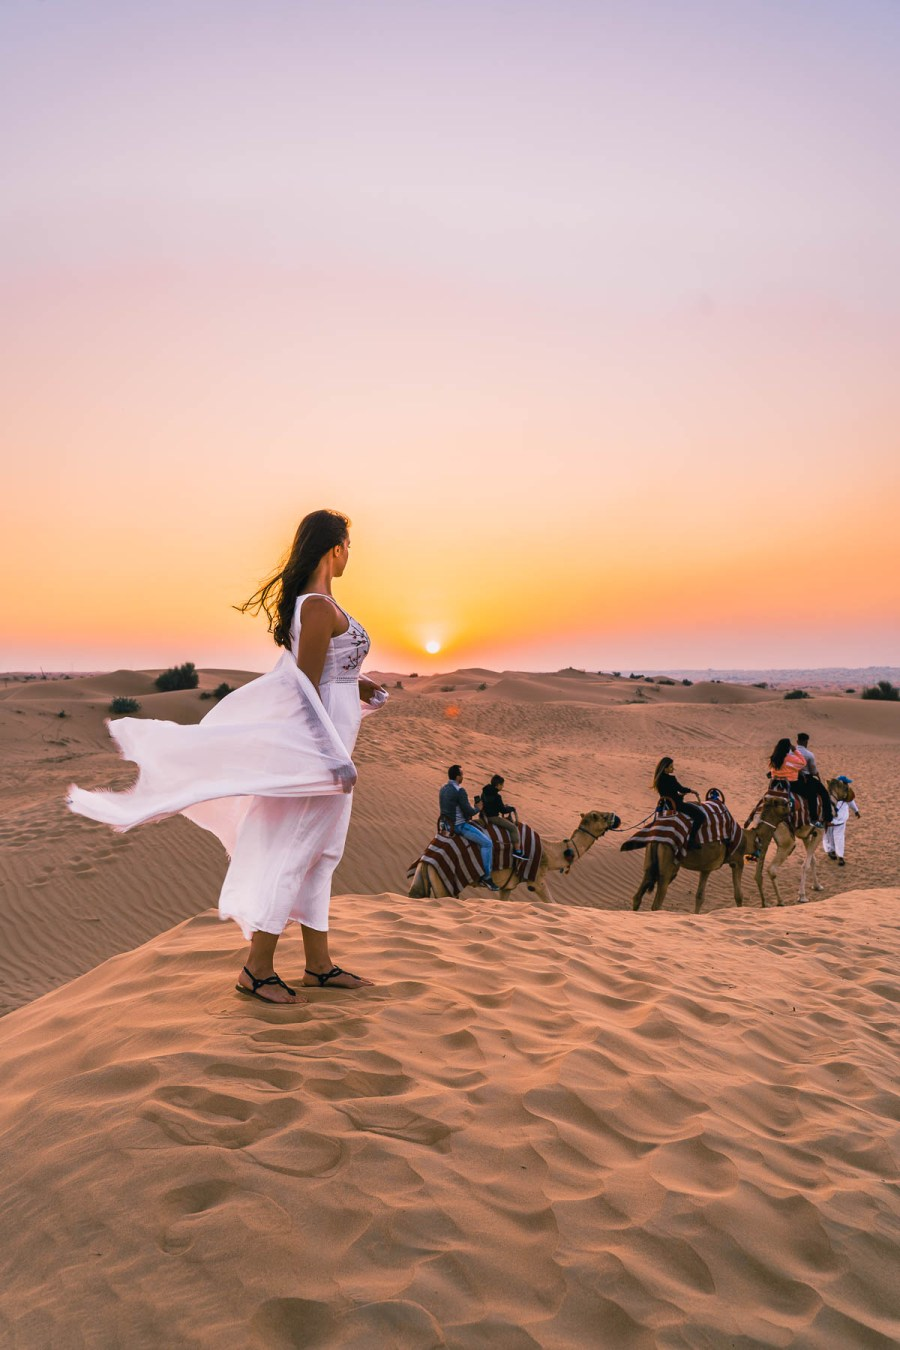 Sunset view in the Dubai desert with a girl in white dress standing in the sand dunes